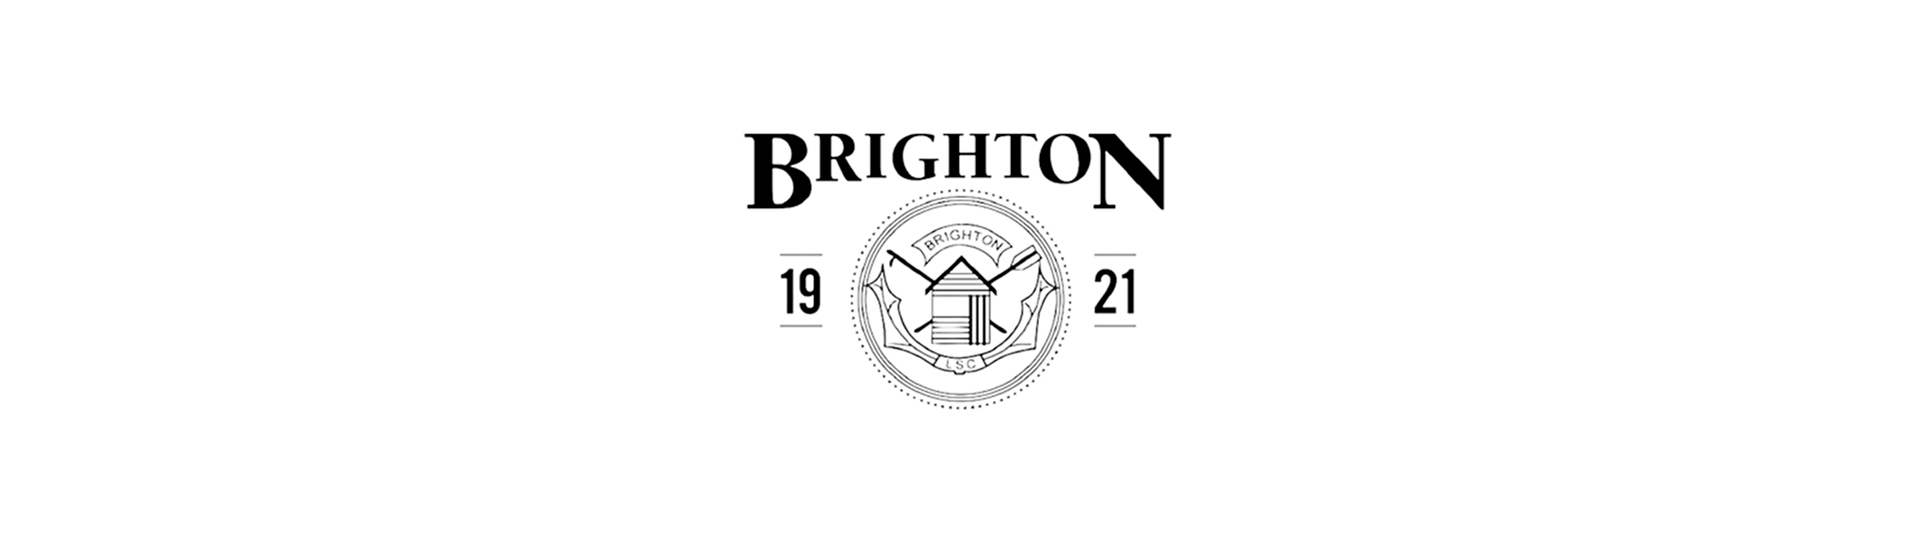 Logo Brighton Soda